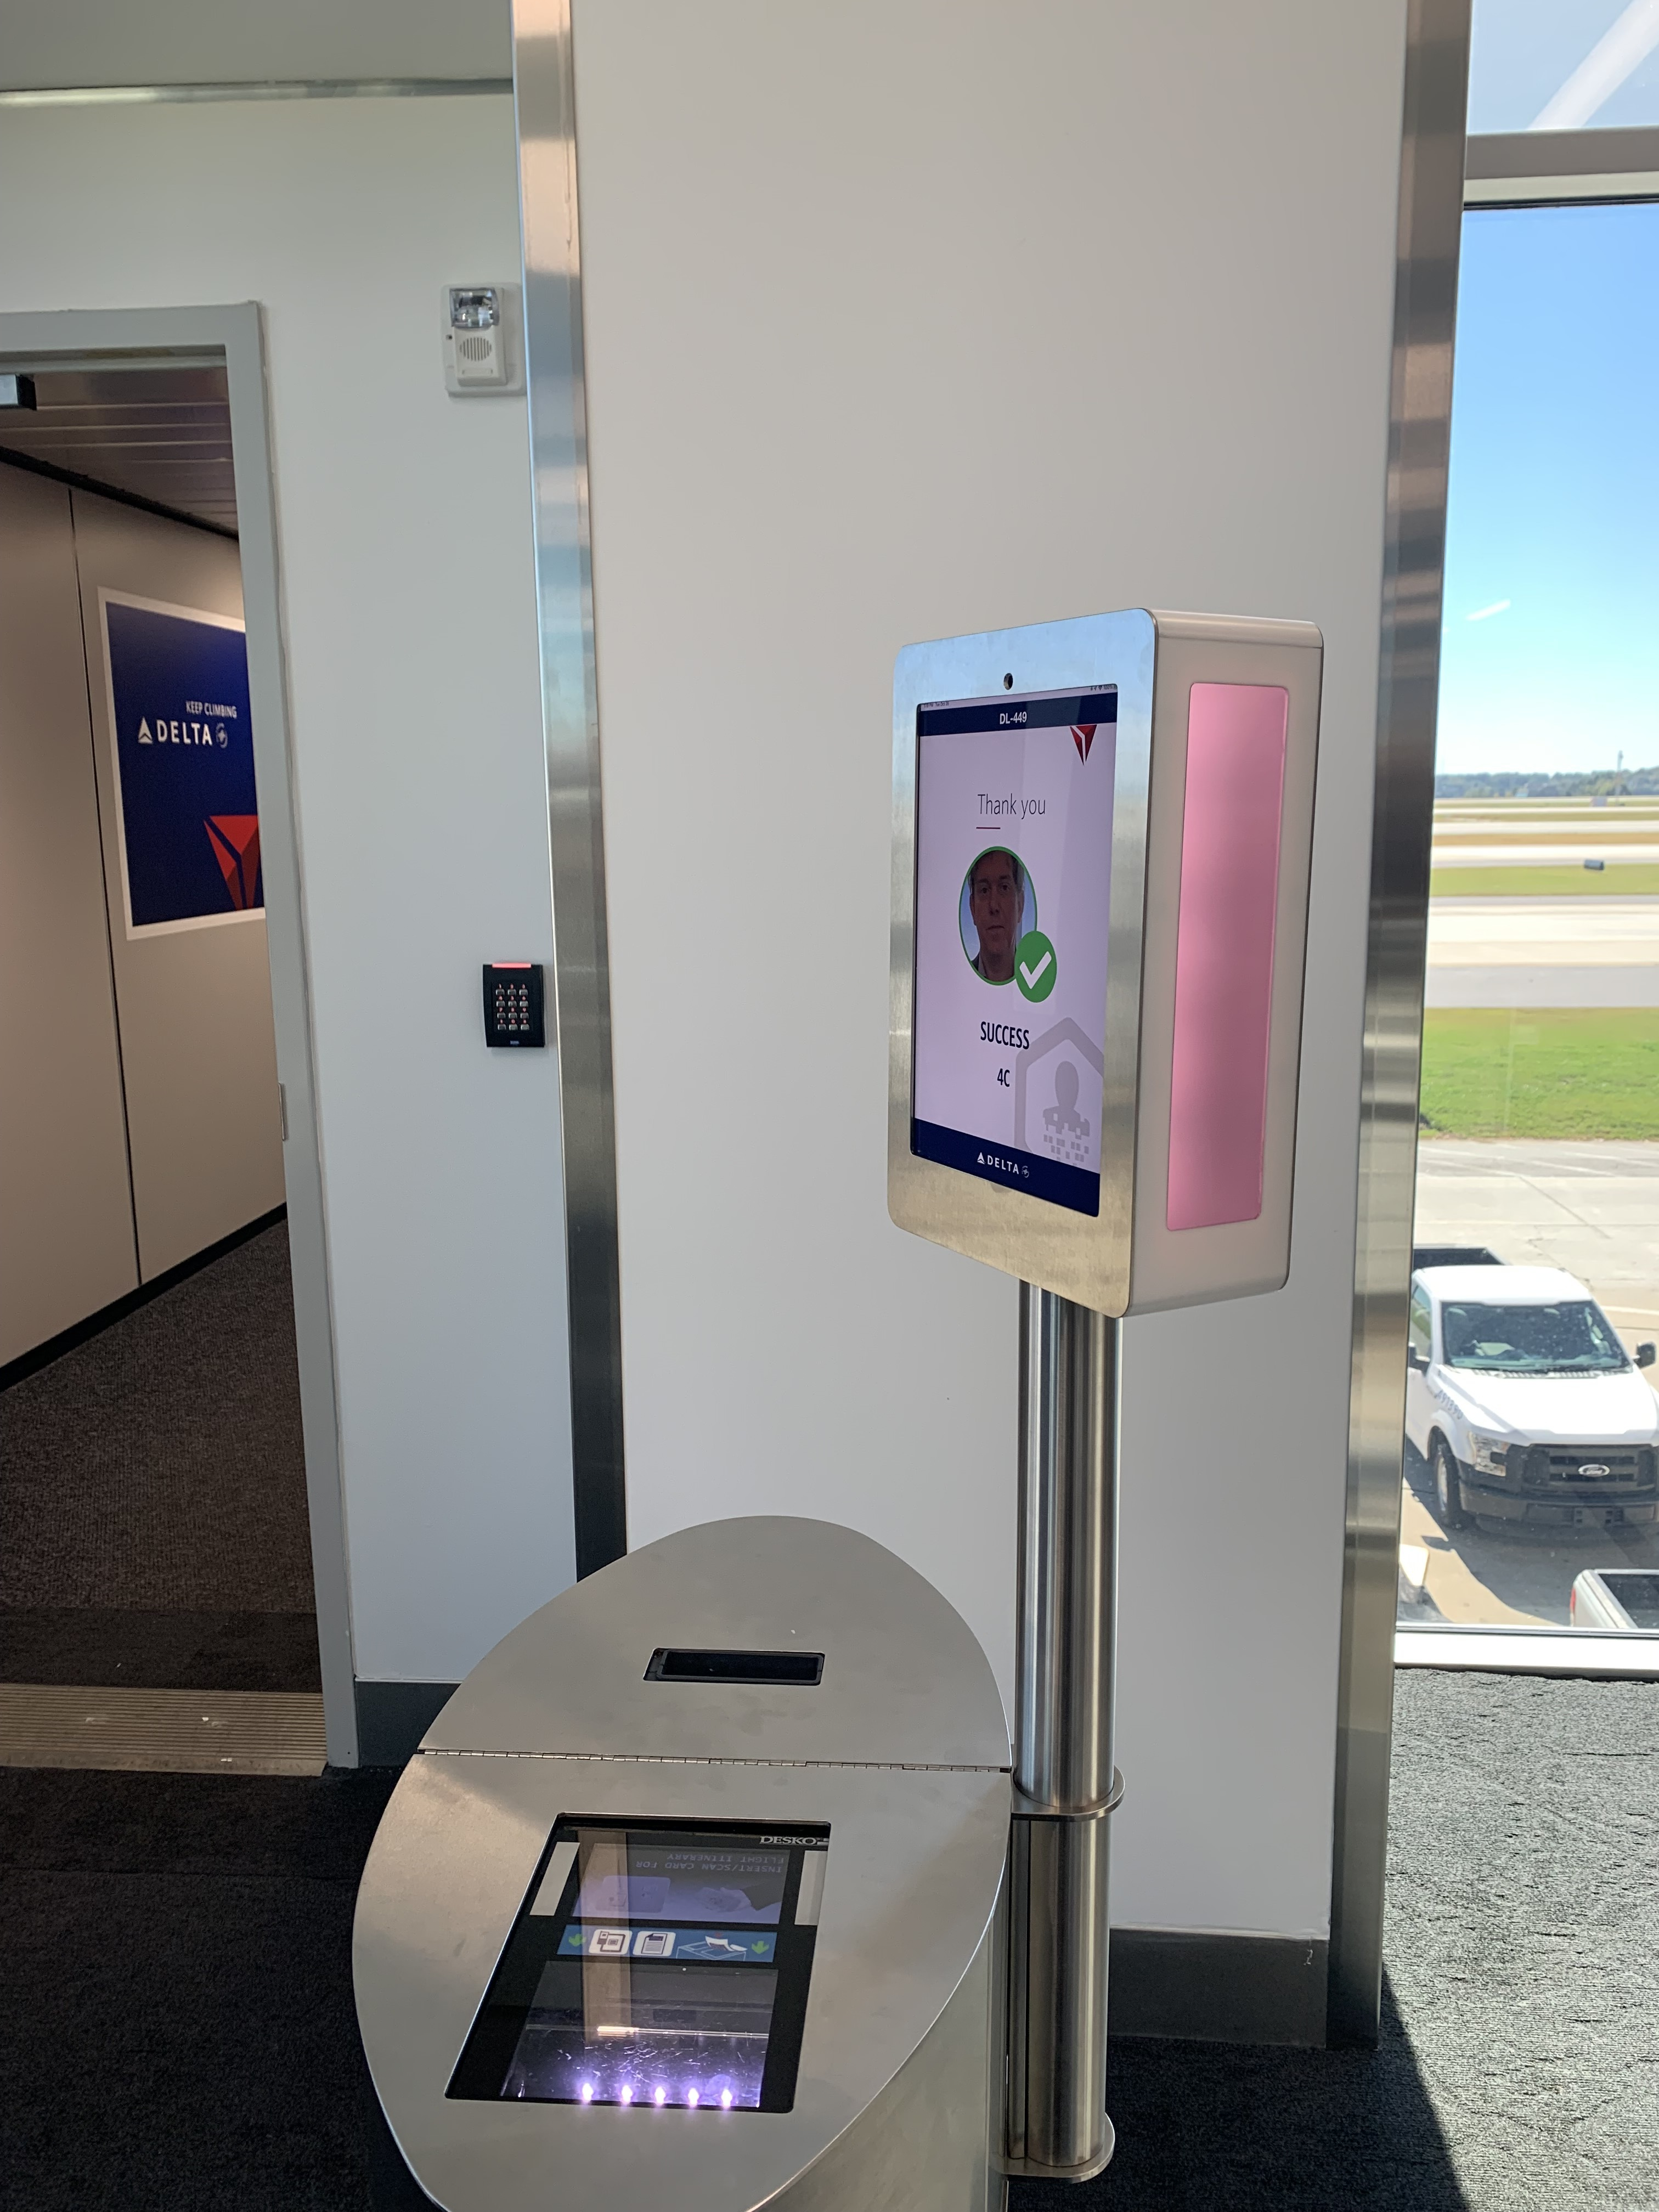 Facial-recognition equipment at the gate conducts a scan to let the passenger through, without the need to show identification or a boarding pass.